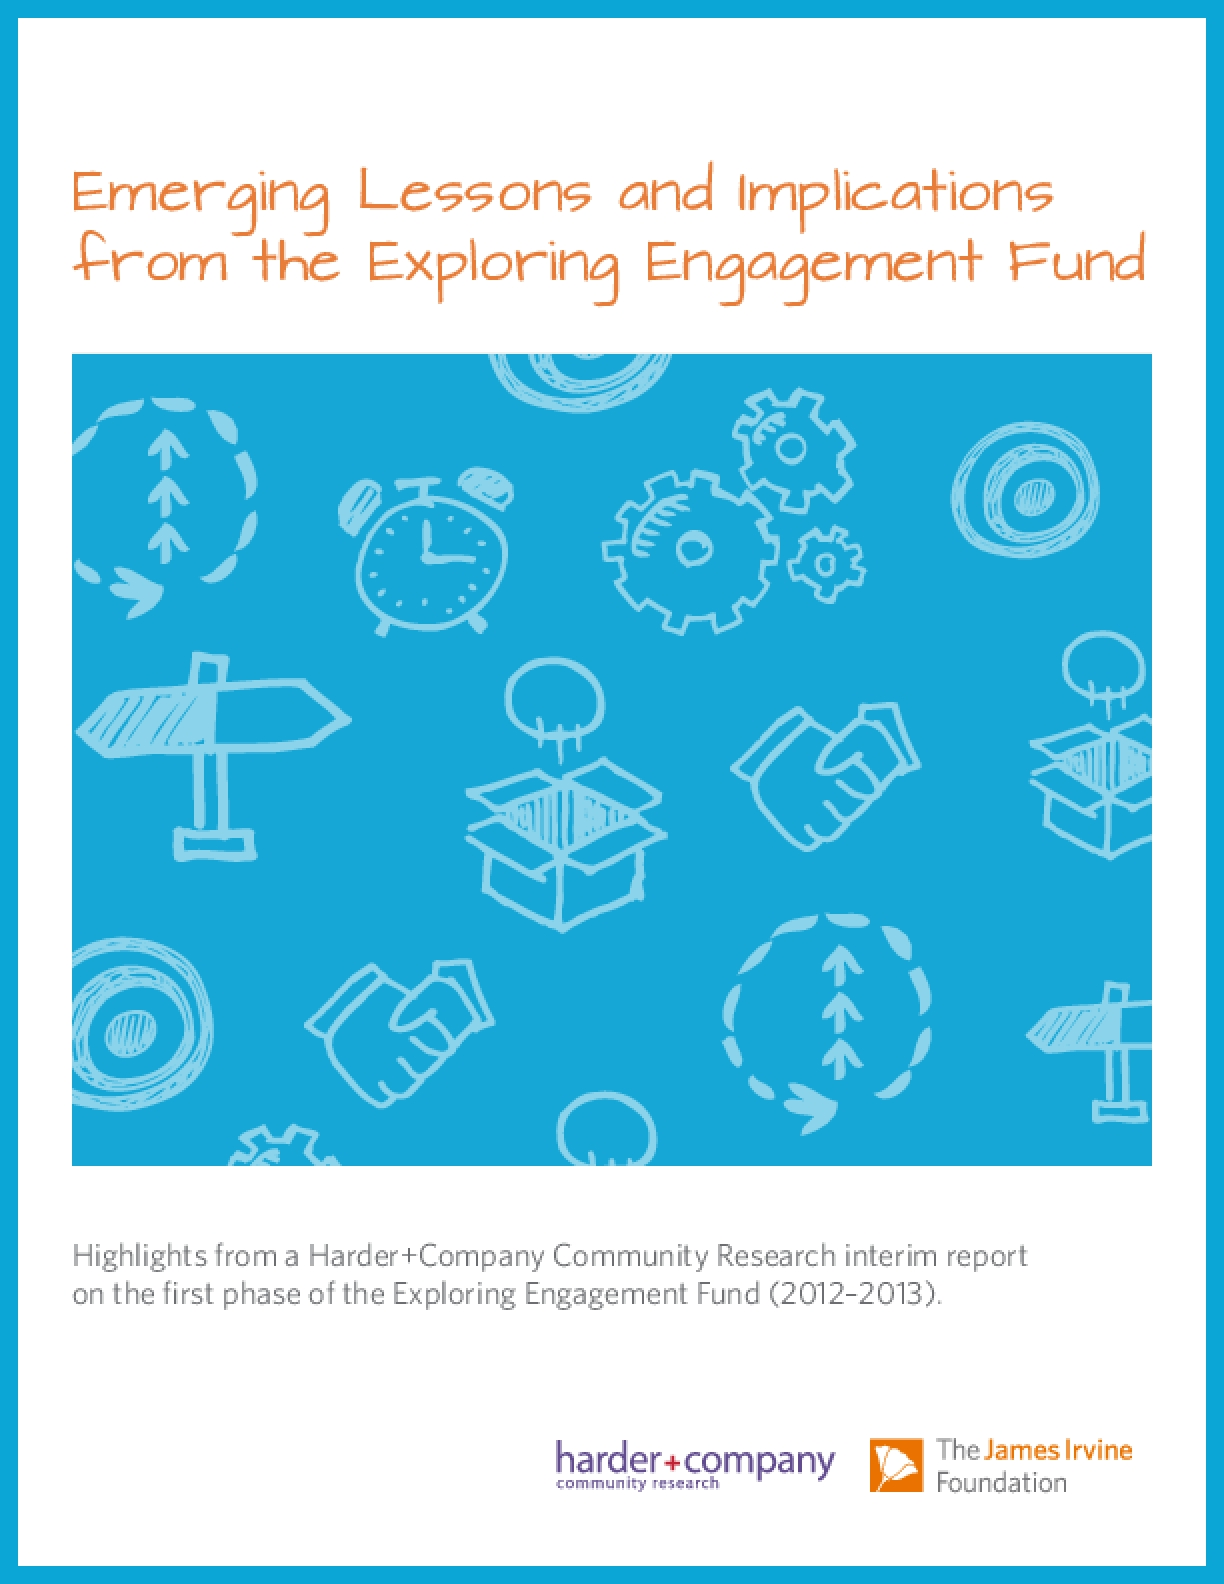 Emerging Lessons and Implications from the Exploring Engagement Fund